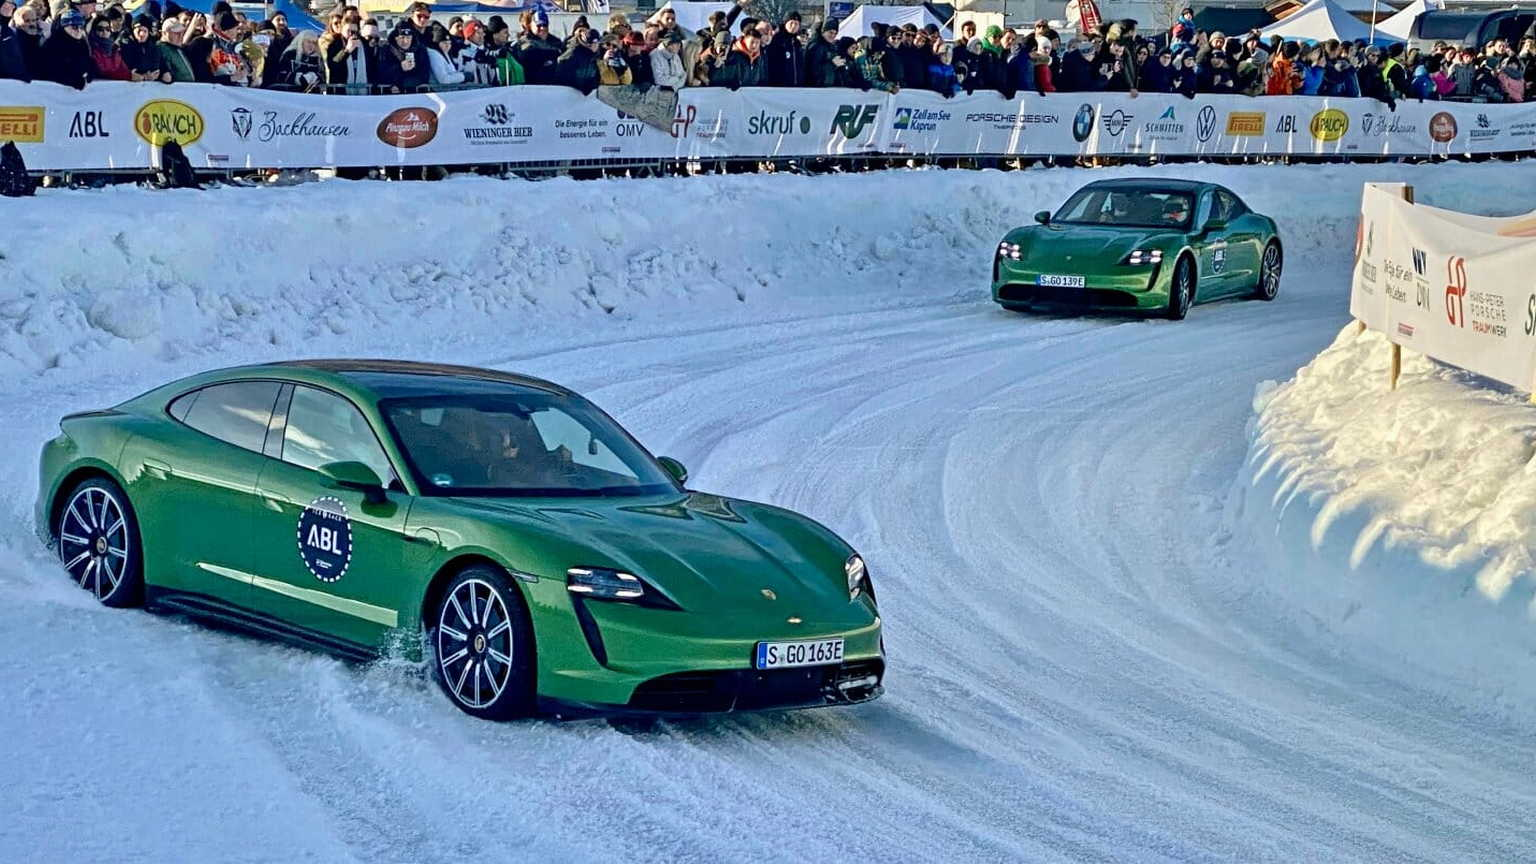 Porsche Taycan at the second GP Ice Race weekend